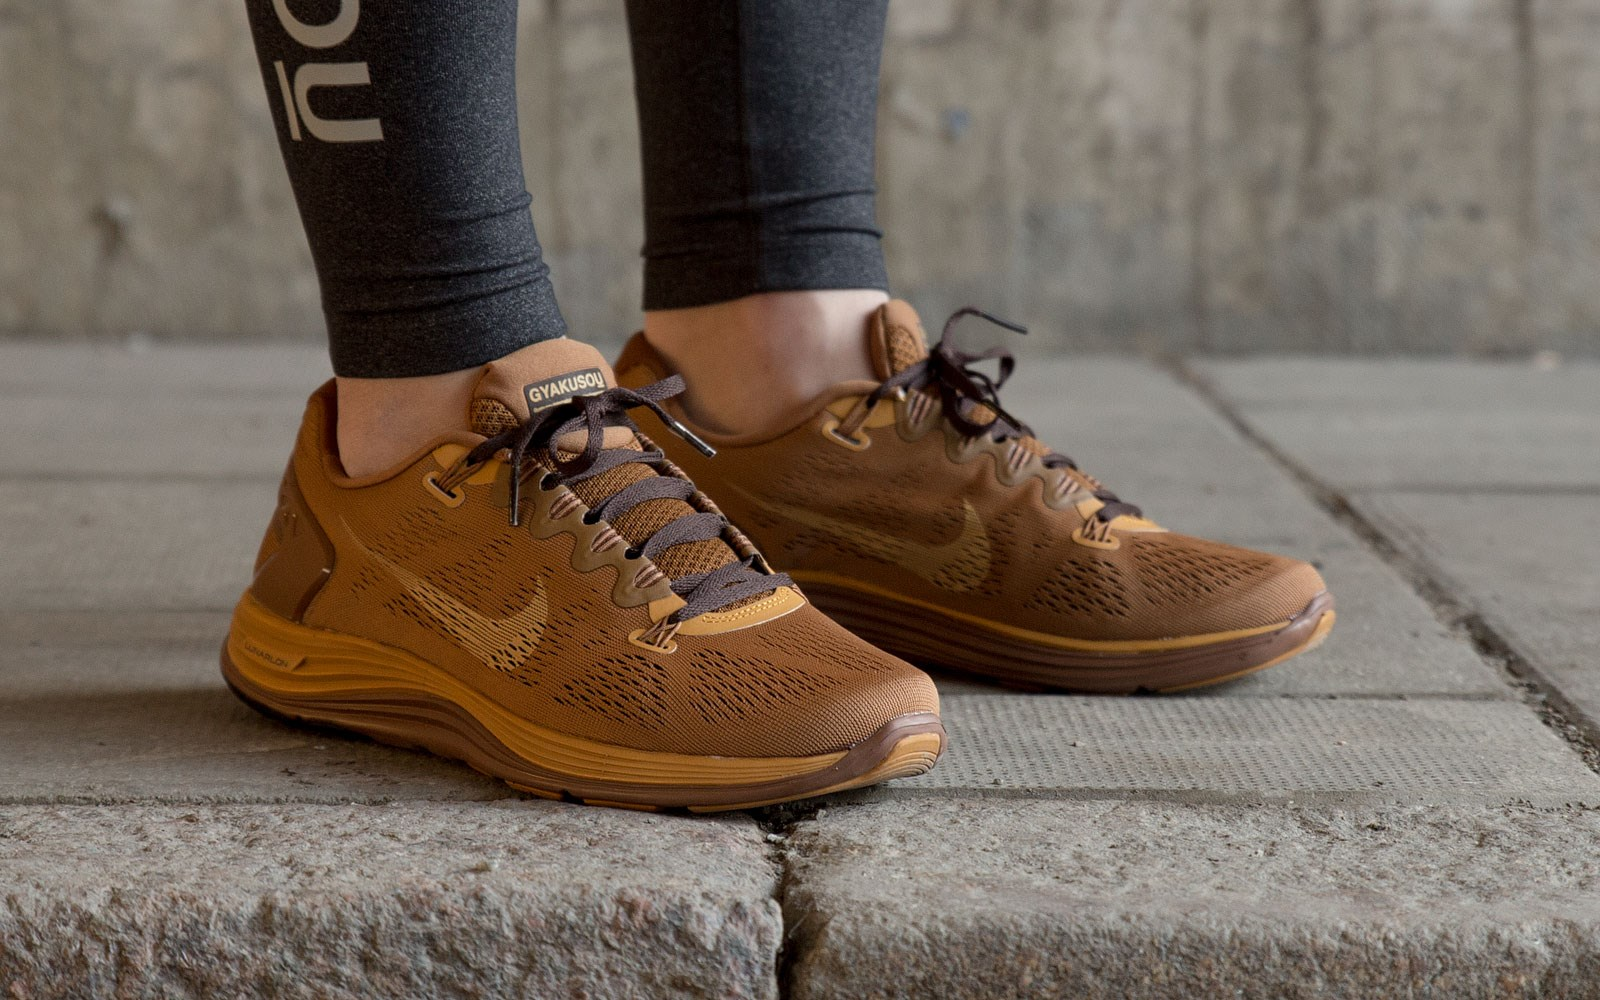 Nike x Undercover GYAKUSOU LunarGlide+ 5 JP in Flat Stout Bronze and Ale Brown